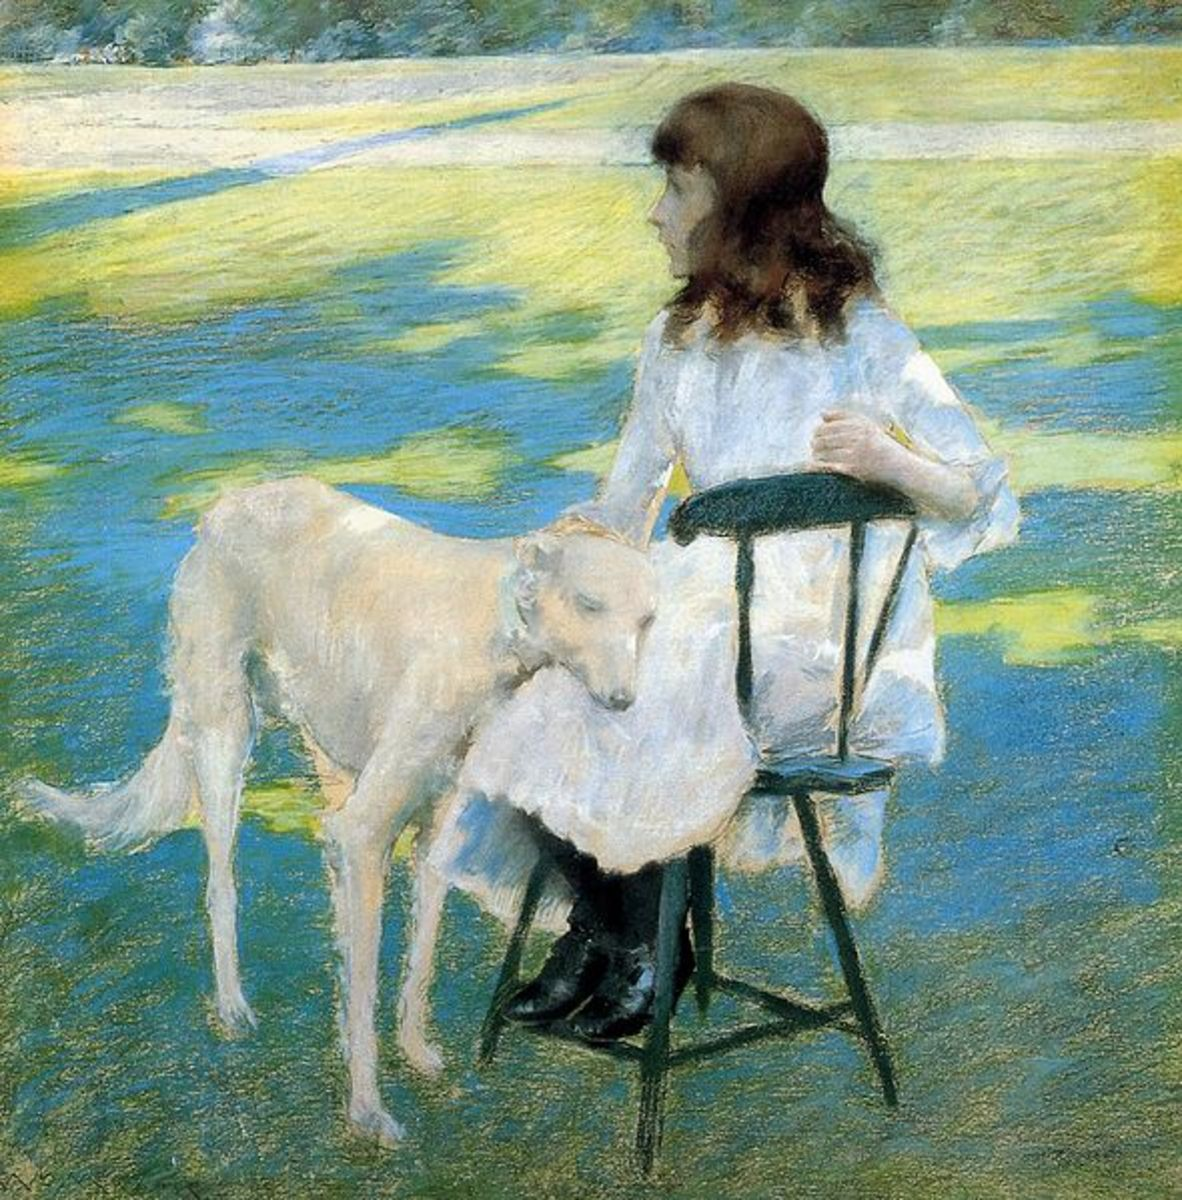 Good Friends.  A girl and her dog.  A precious piece of art.